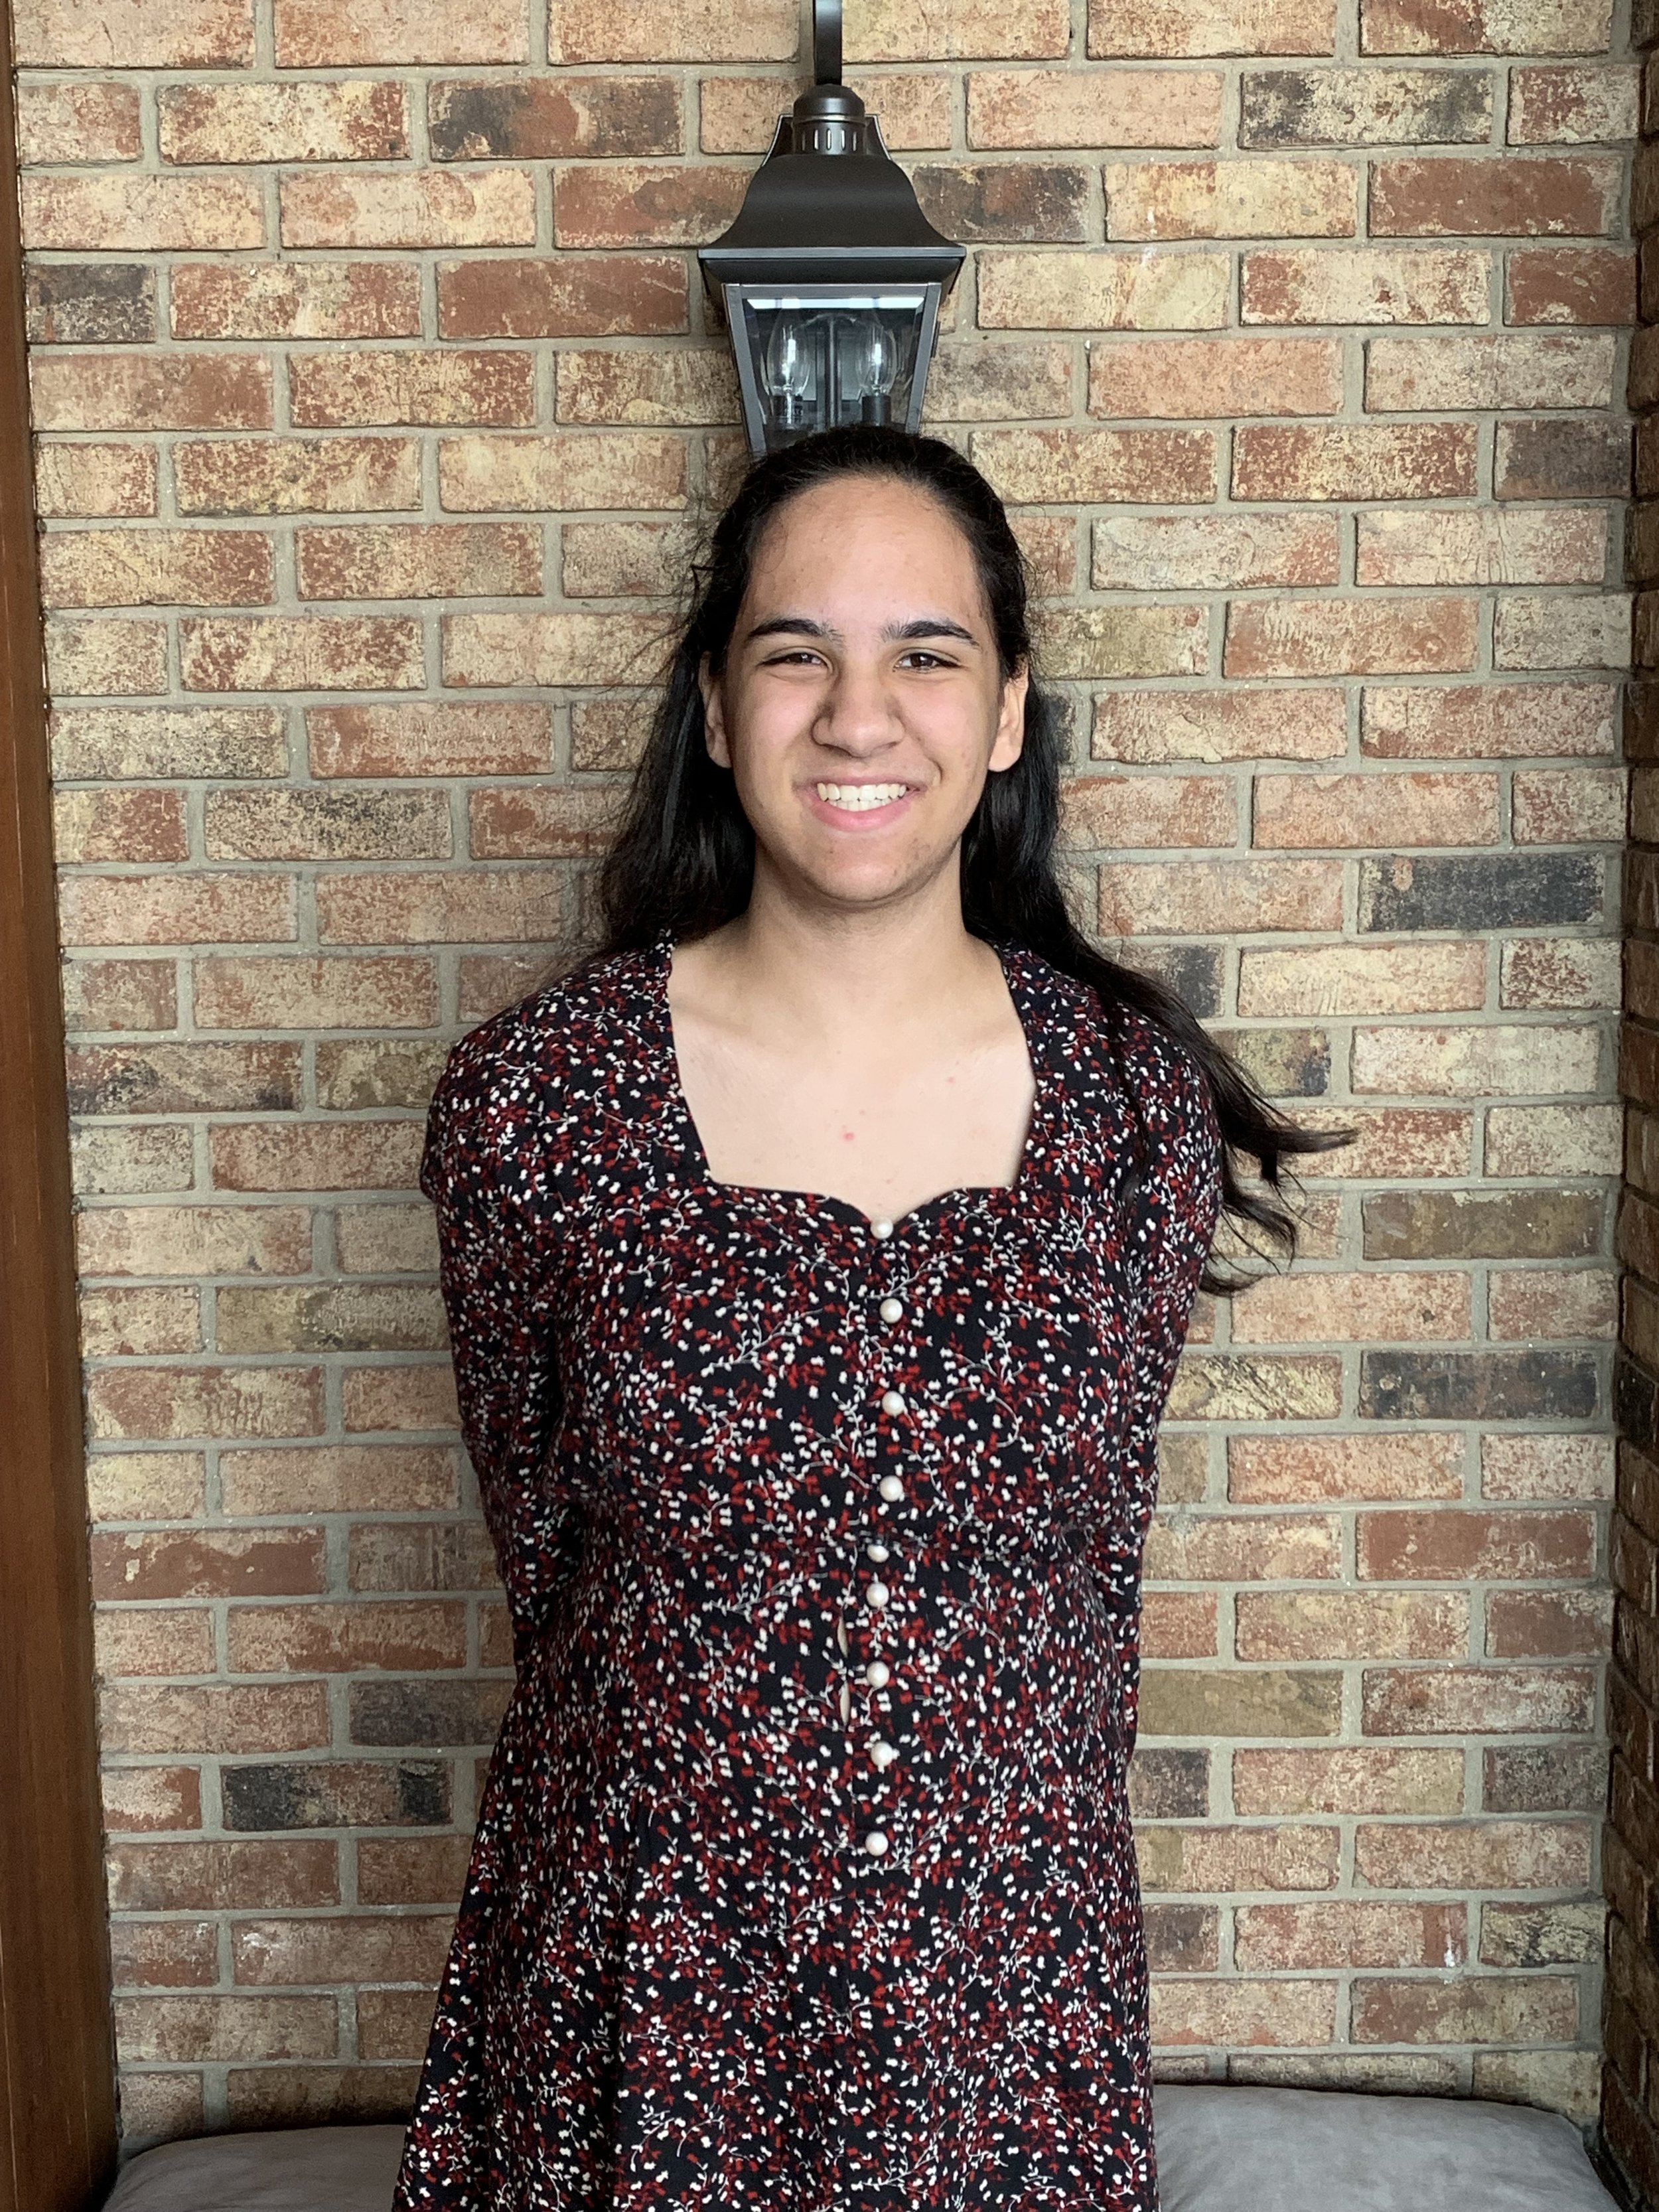 Brantley Hallford - Brantley enjoys doing many activities such as: dancing, reading, watching various movies, TV shows, and Netflix.She enjoys watching TV shows and movies that are full of comedy, action and adventurous, cooking, and drama. A fun fact that is really interesting is that she lived in Australia for 2 years. Brantley describes herself as being introverted, however, she describes herself as not being too shy or too outgoing.